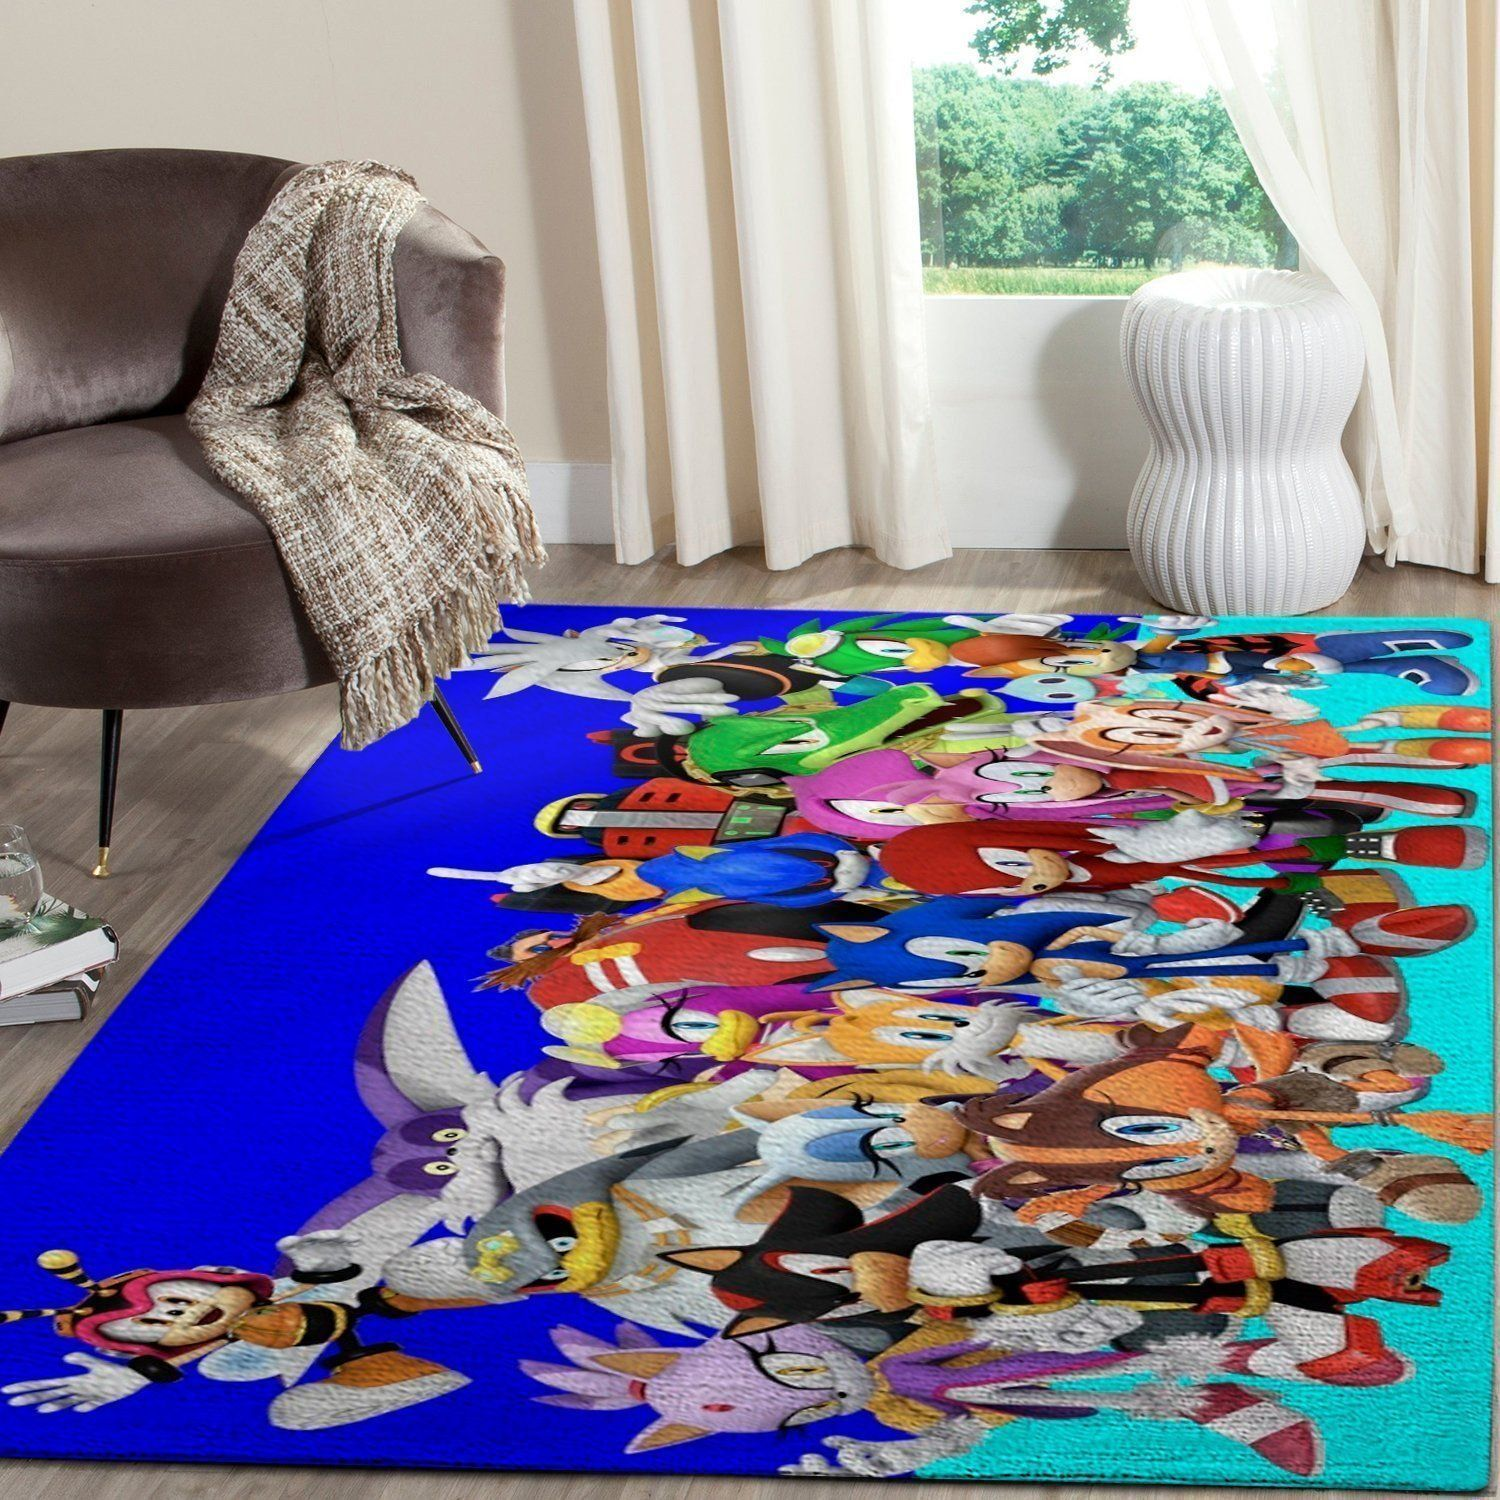 Sonic the Hedgehog Area Rug / Gaming Carpet, Gamer Living Room Rugs, Floor Decor 101120